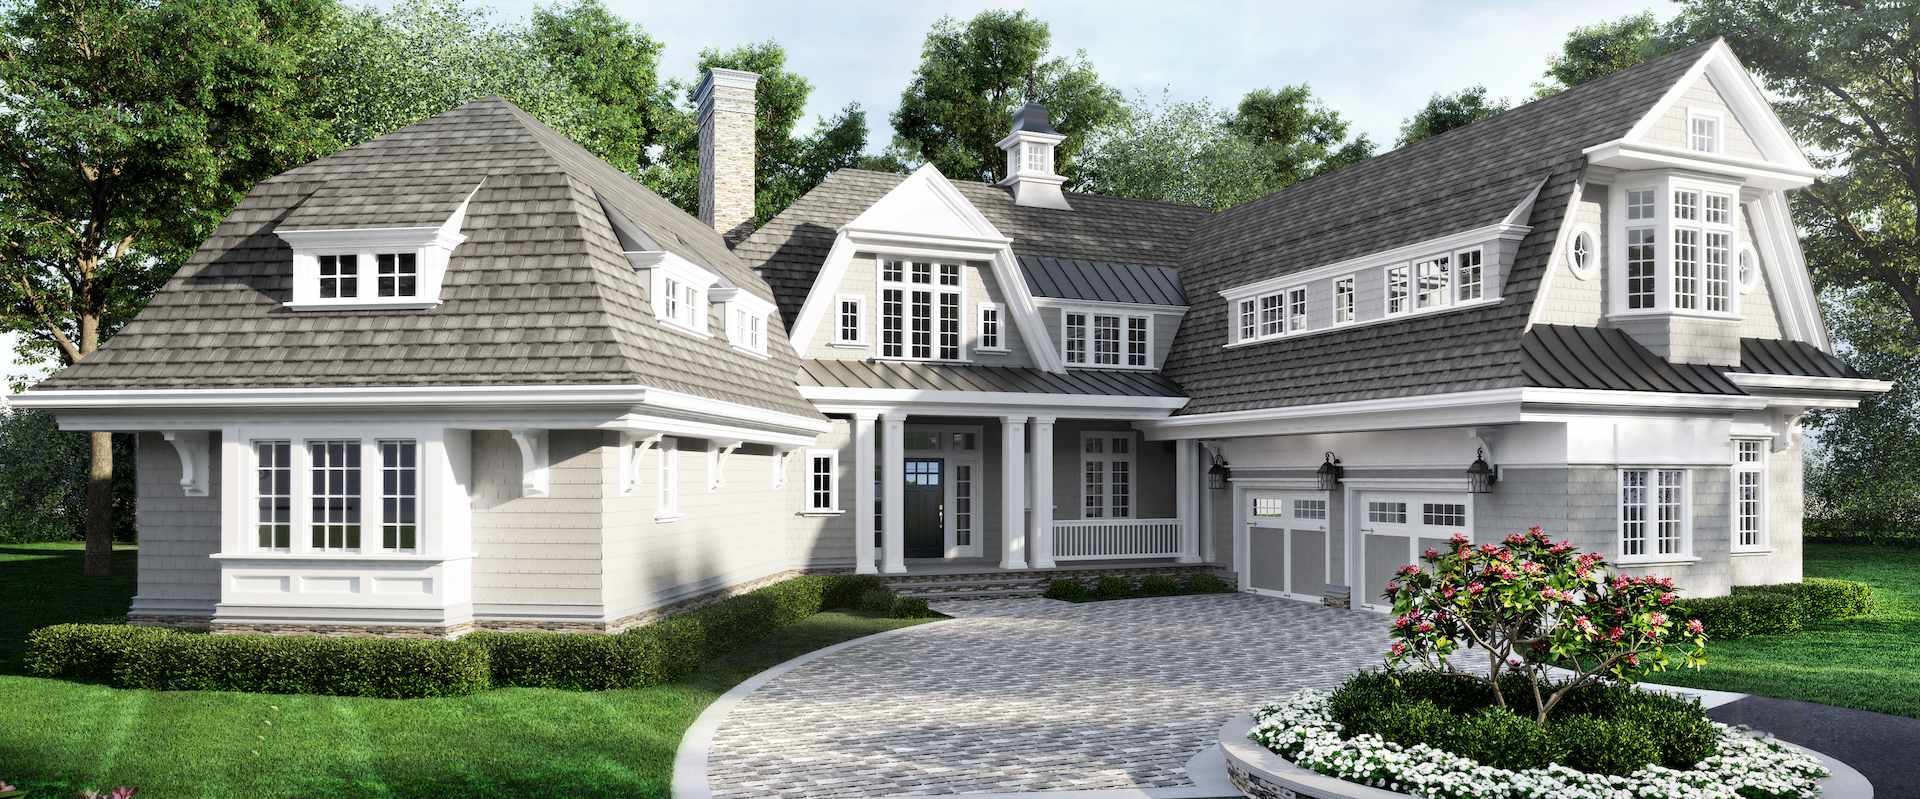 Grant homes custom home builders in new jerseygrant homes for Nj house builders